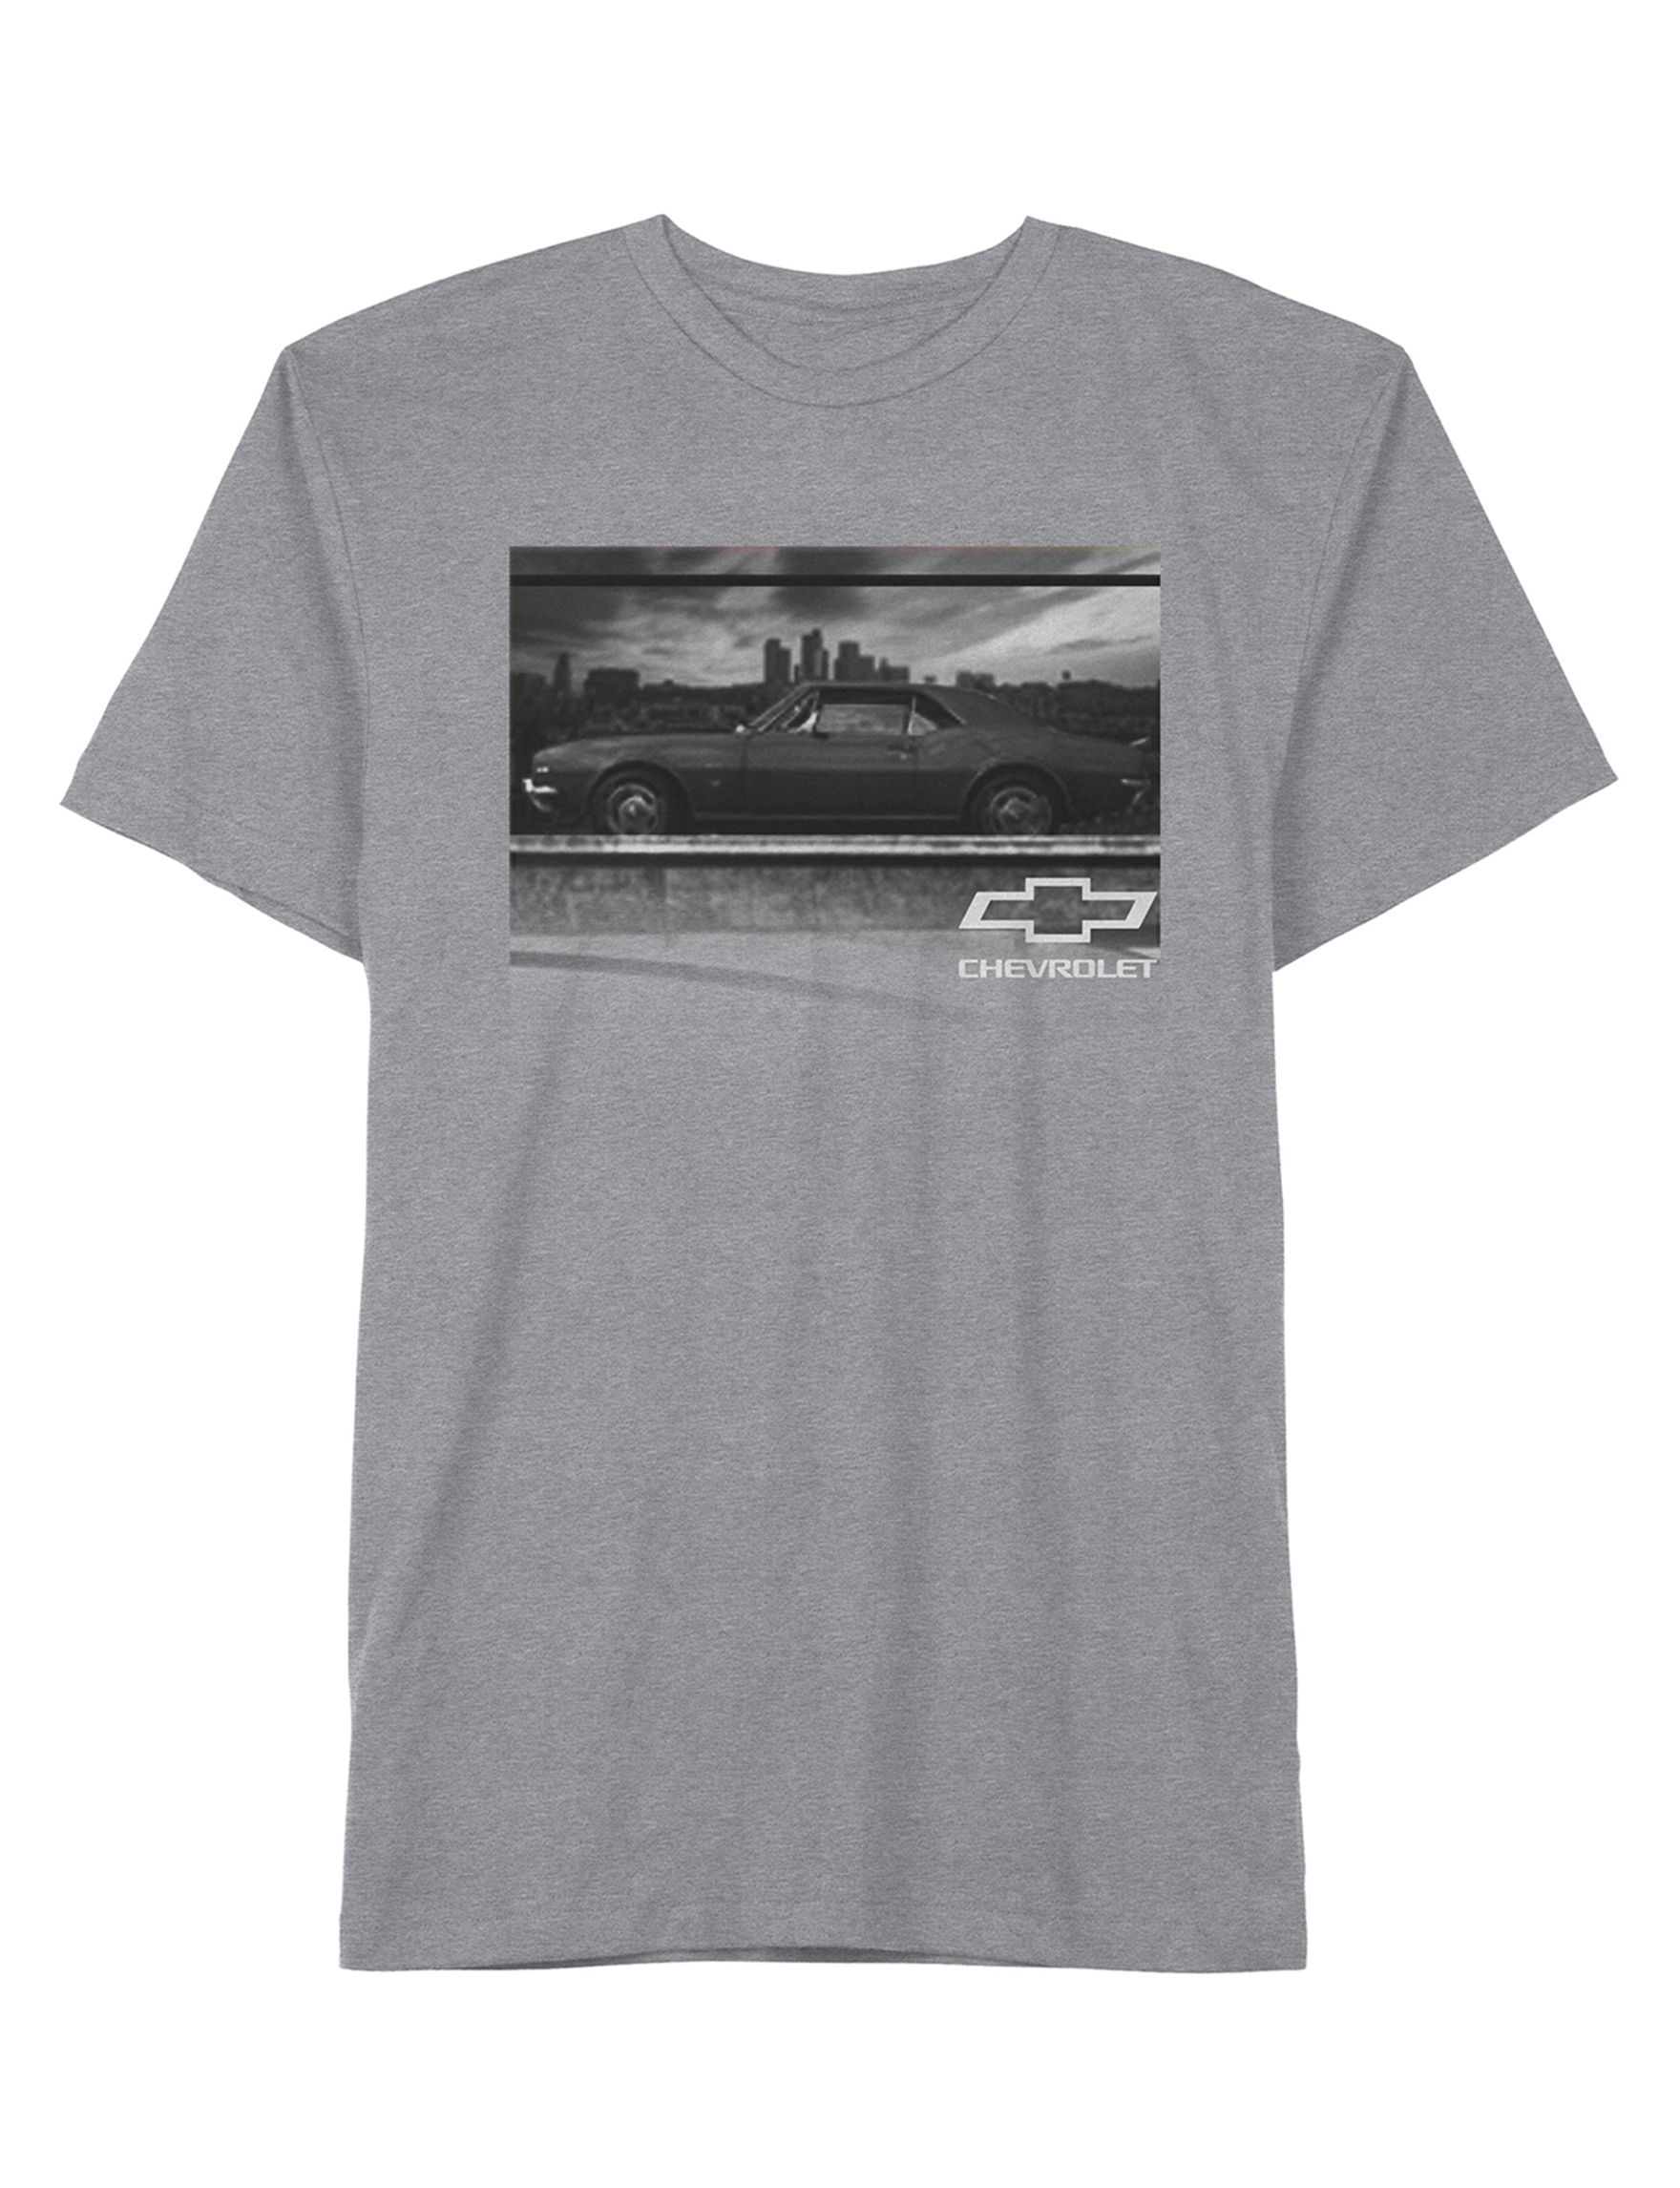 Licensed Grey Tees & Tanks